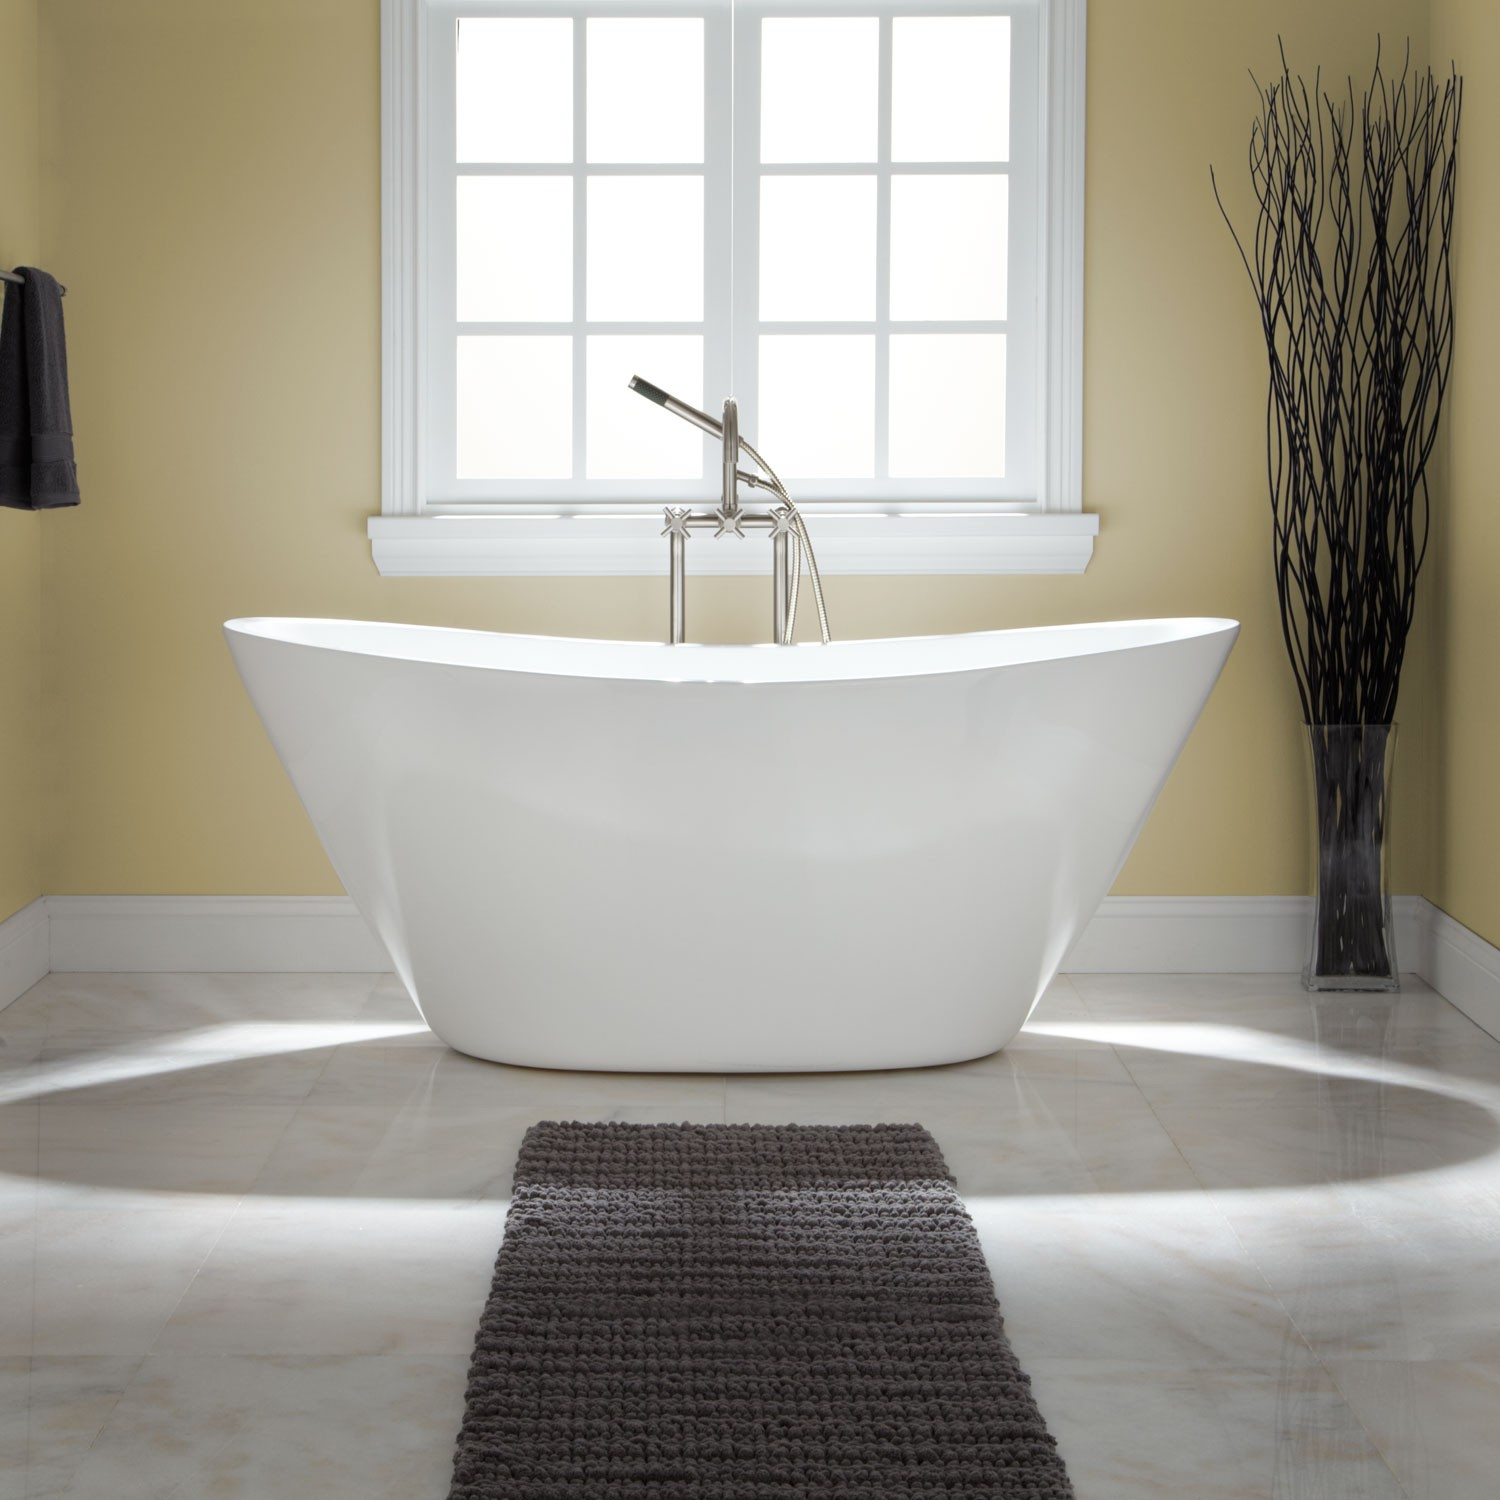 minimalist tub for two with stainless steel water sprayer dark grey wool  mat bathroom Create A Romantic Scenery by Enjoying Bath Session on Soaking Tub